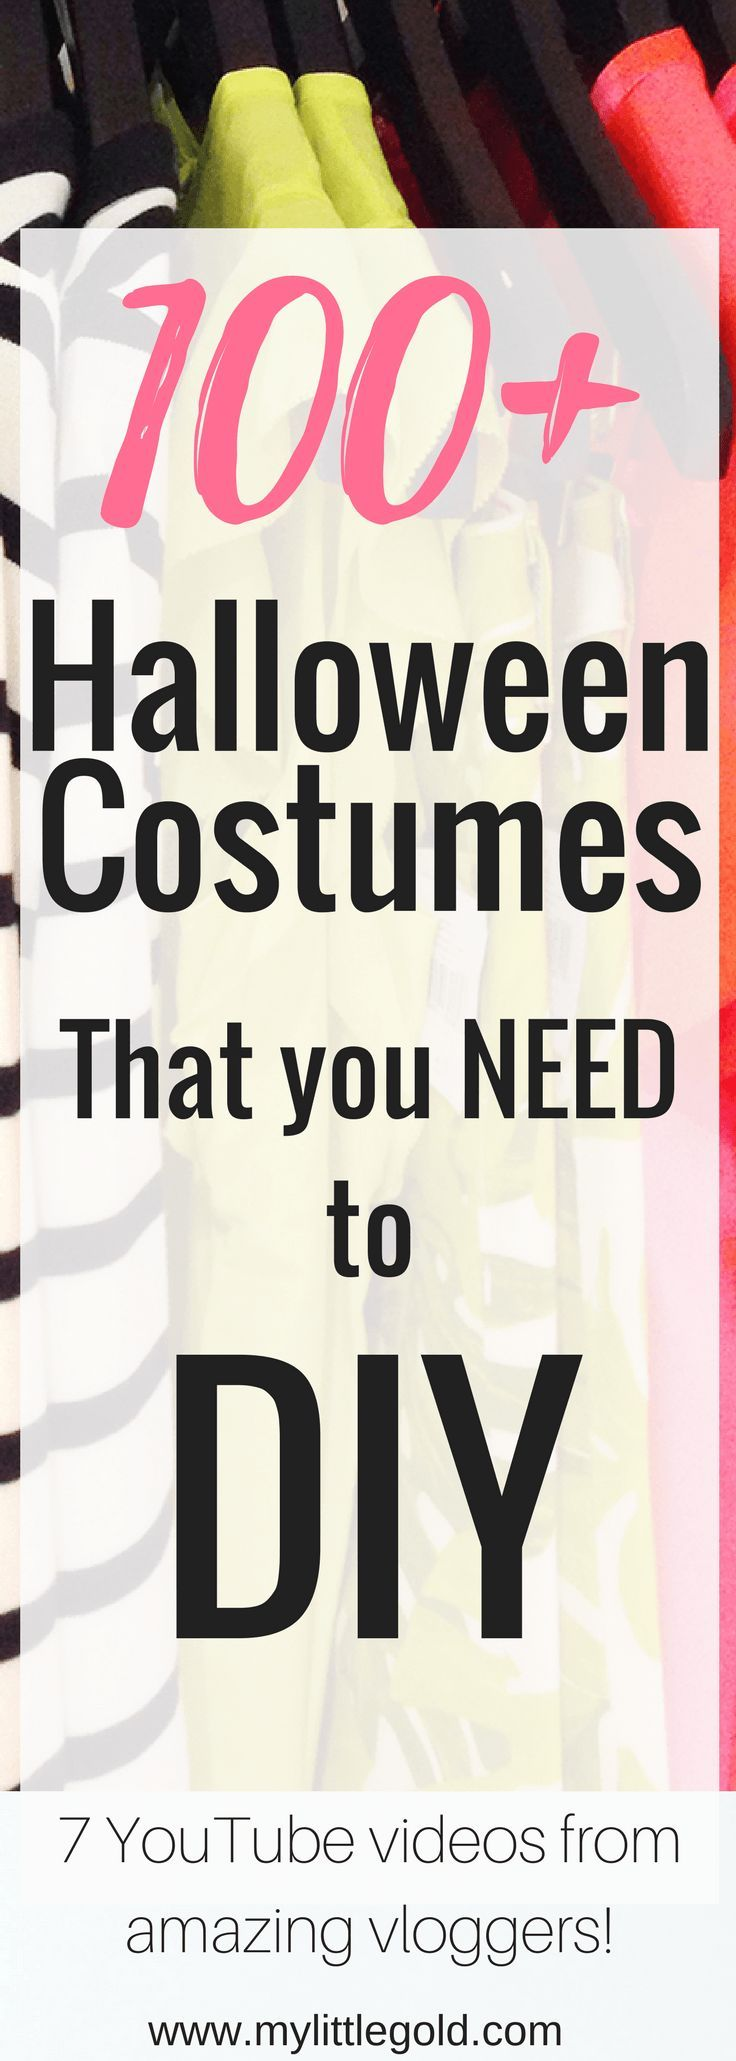 100+ Costume ideas that you NEED to DIY this Halloween!  Easy simple fun funny couple costume